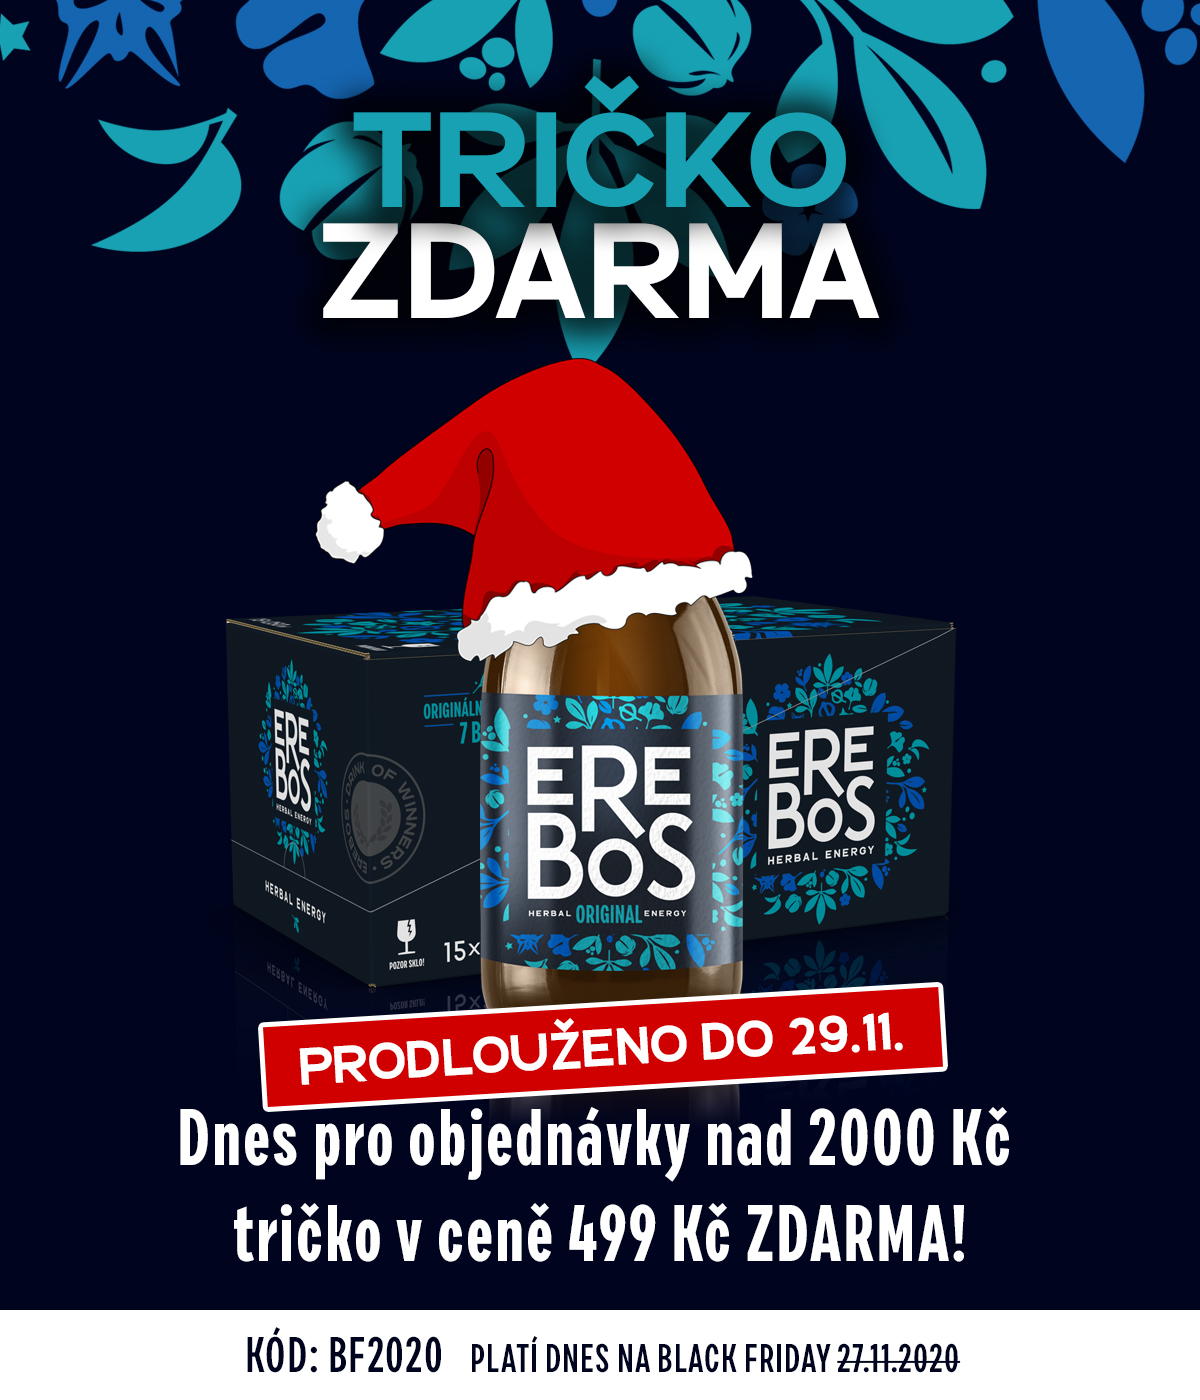 Black Friday - prodlouženo do 29.11.